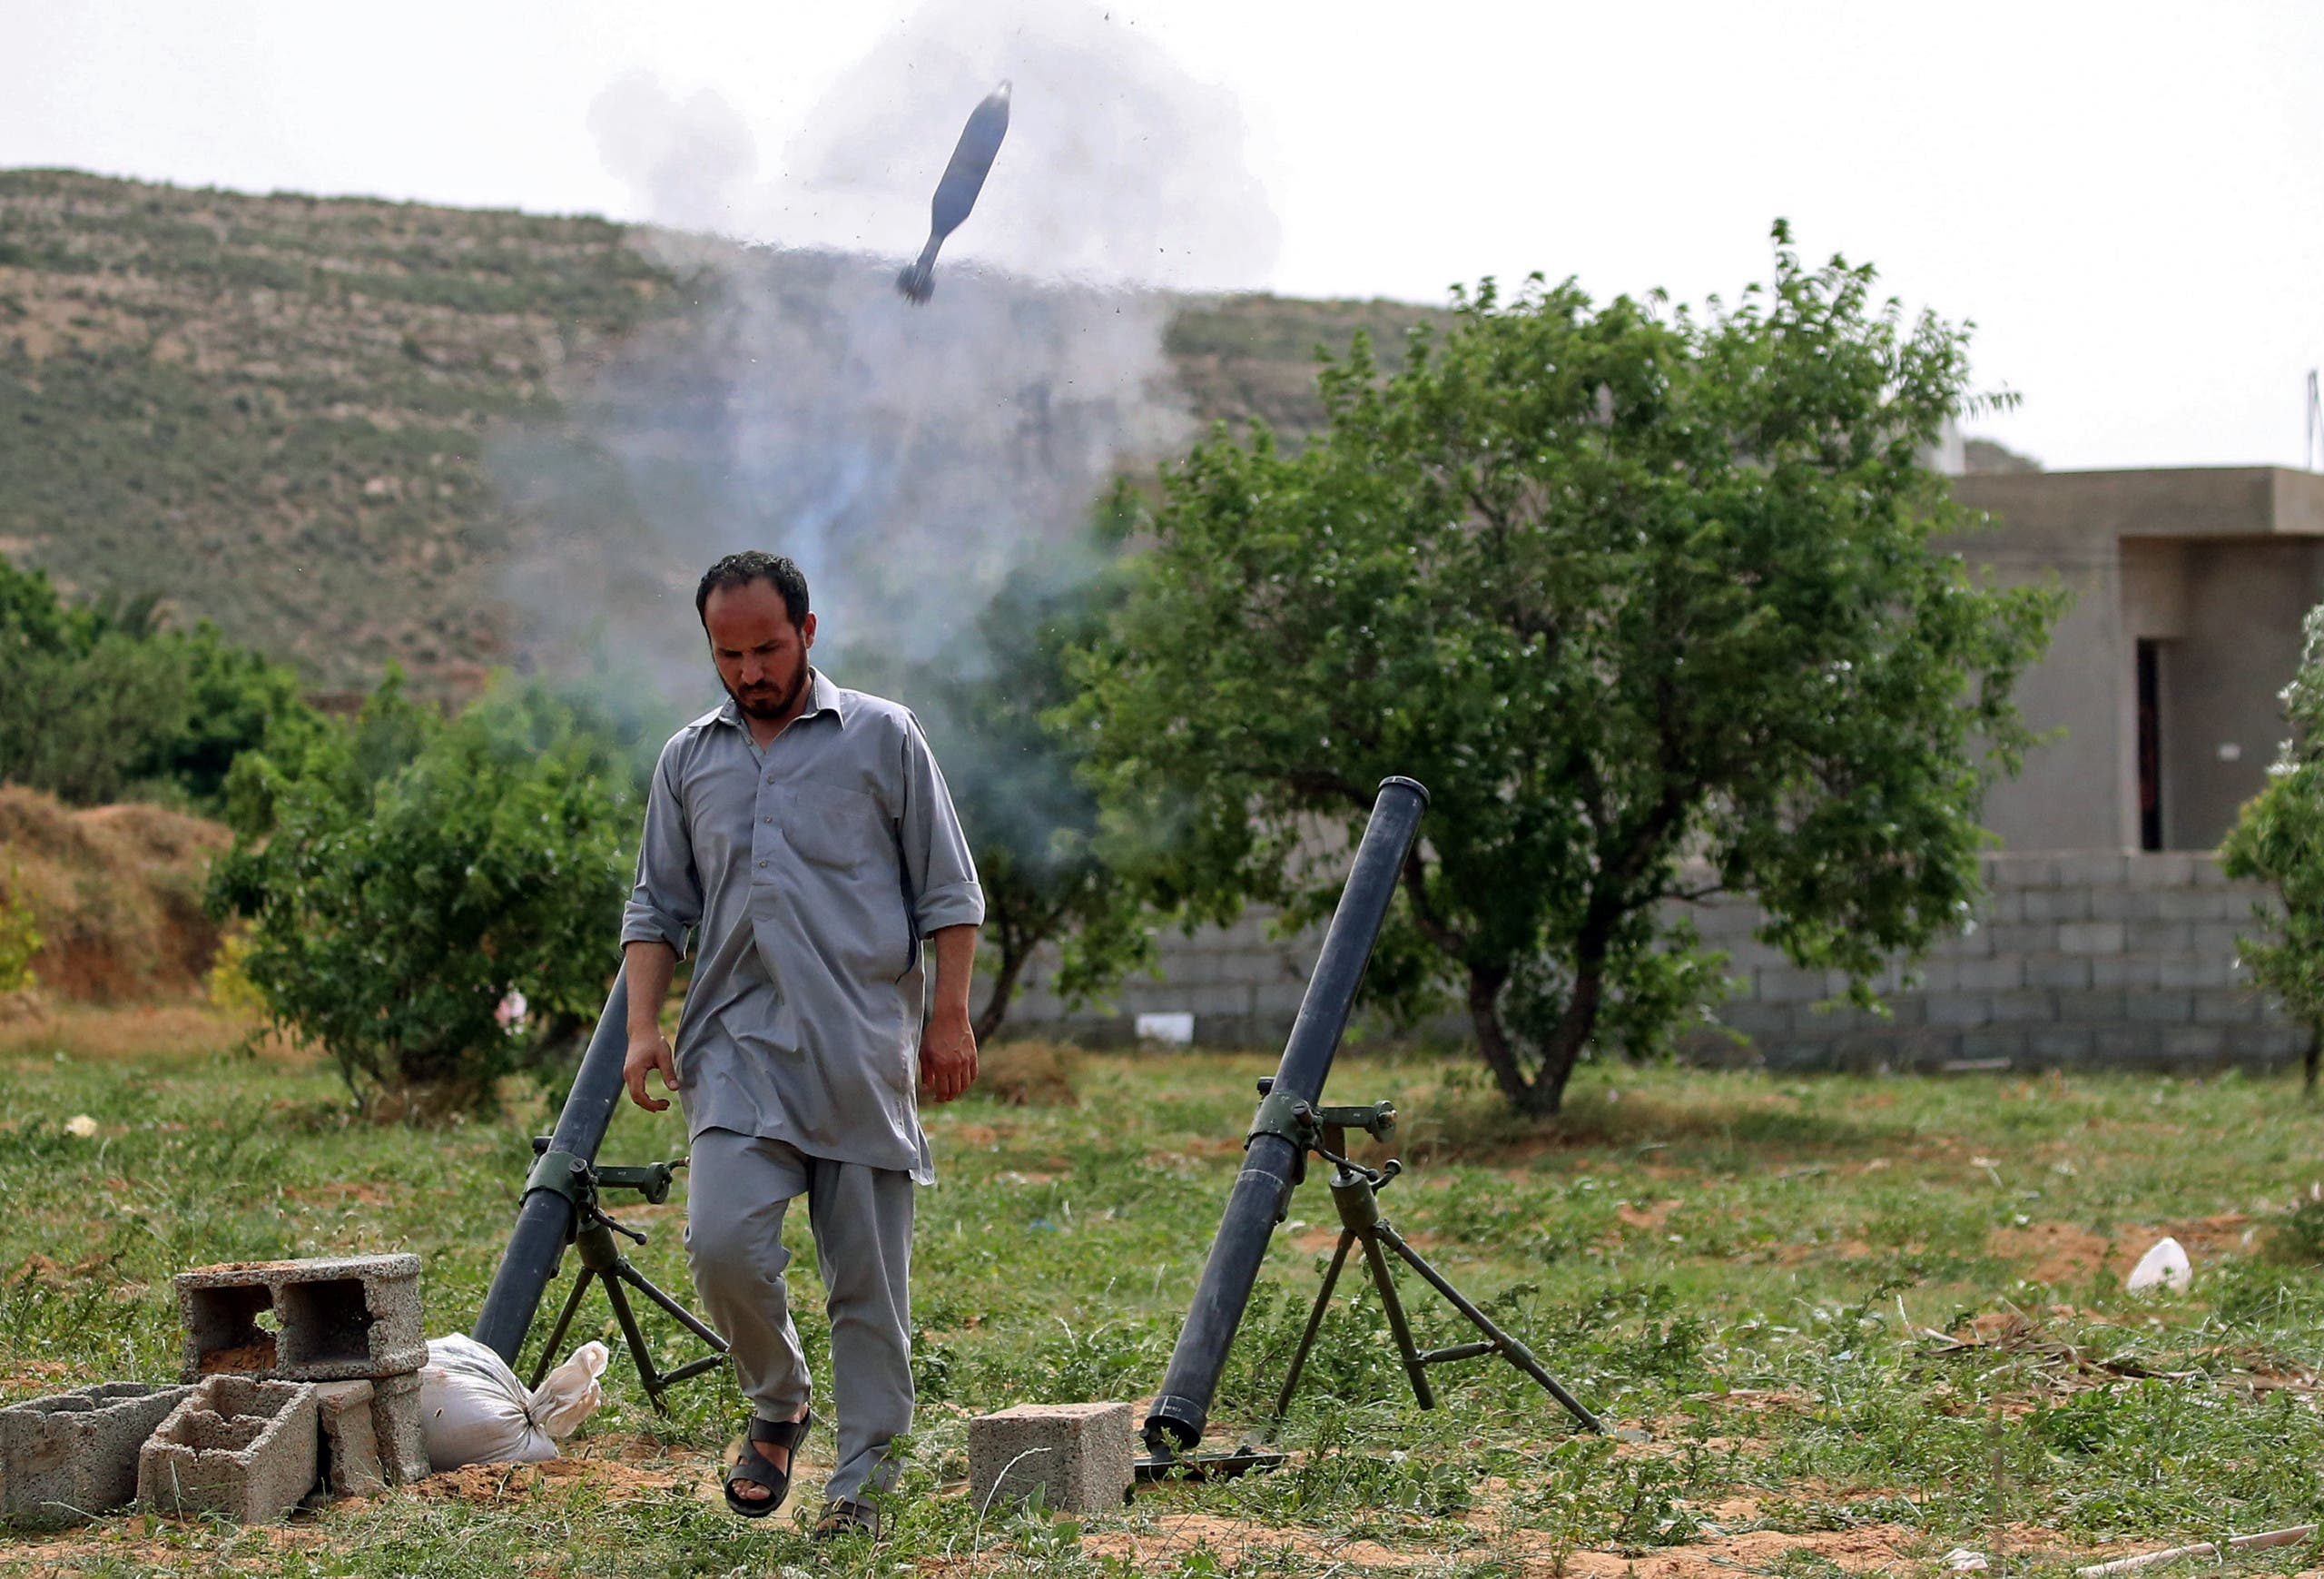 A fighter with Libya's UN-recognised Government of National Accord (GNA) fires rockets from a position near the town of Garabulli toward the city of Tarhuna, southwest of the capital Tripoli (File photo)